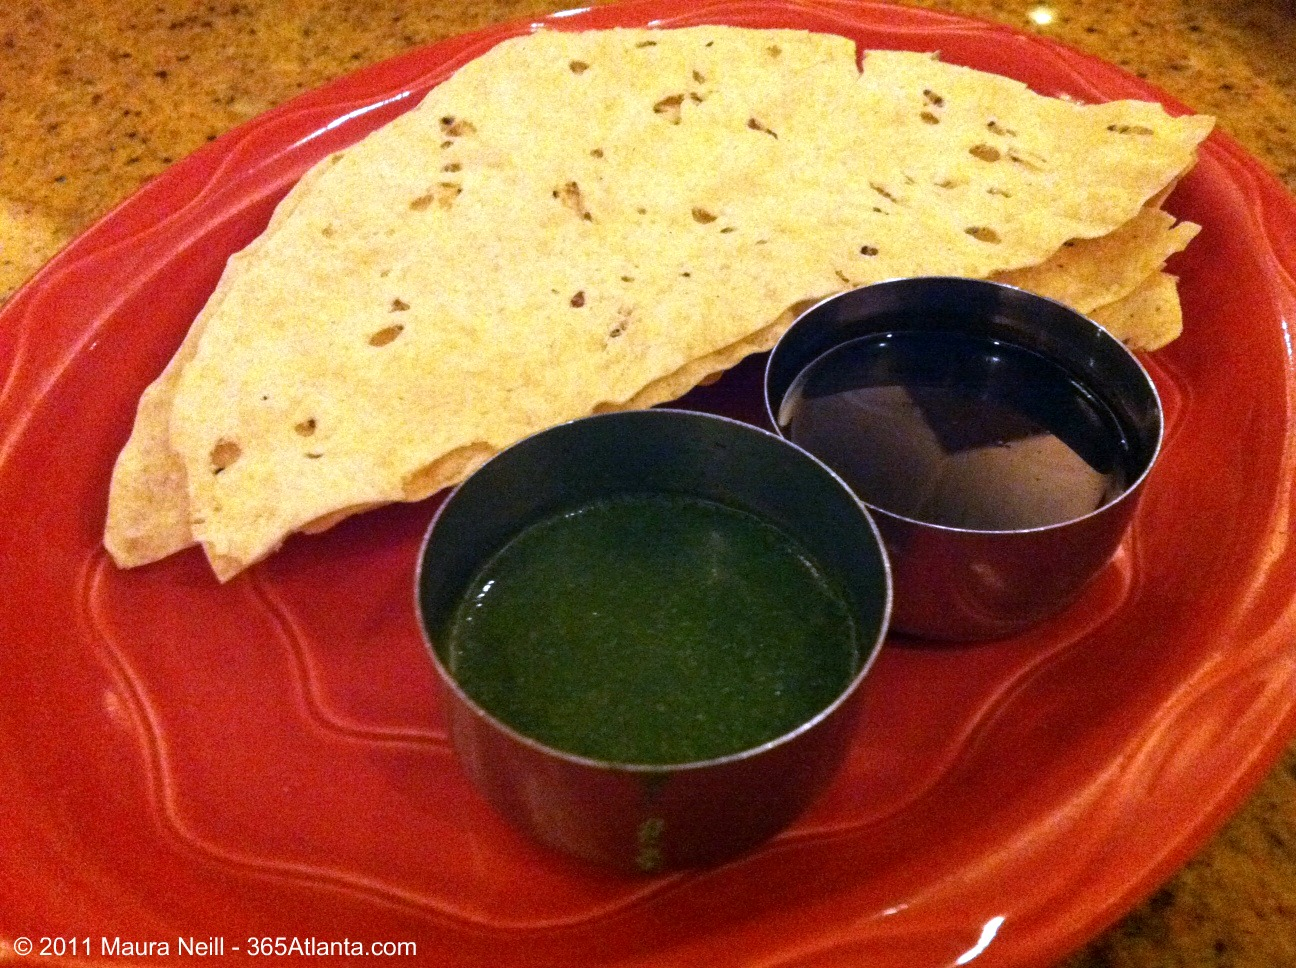 madras-chettinaad-4305-state-bridge-road-alpharetta-ga-papadum-with-chutney